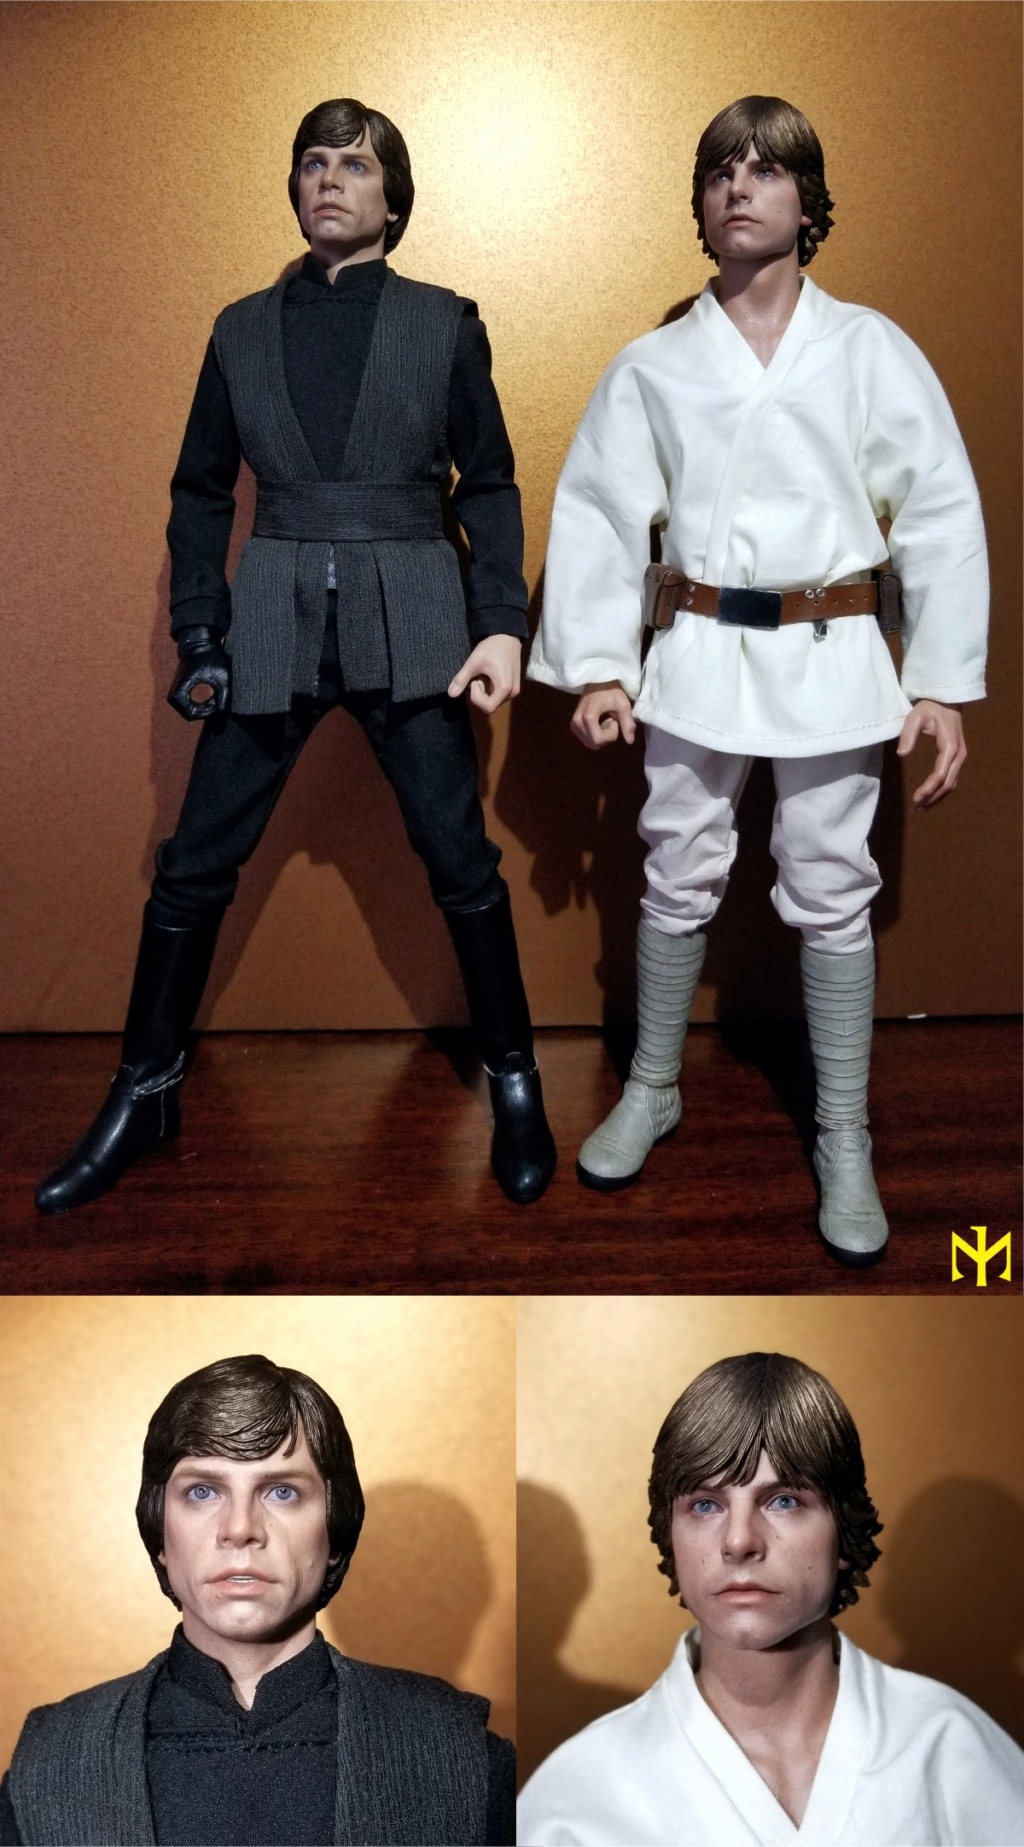 rotj - Hot Toys Star Wars Emperor Palpatine (Deluxe) Review - Page 2 Htluke10